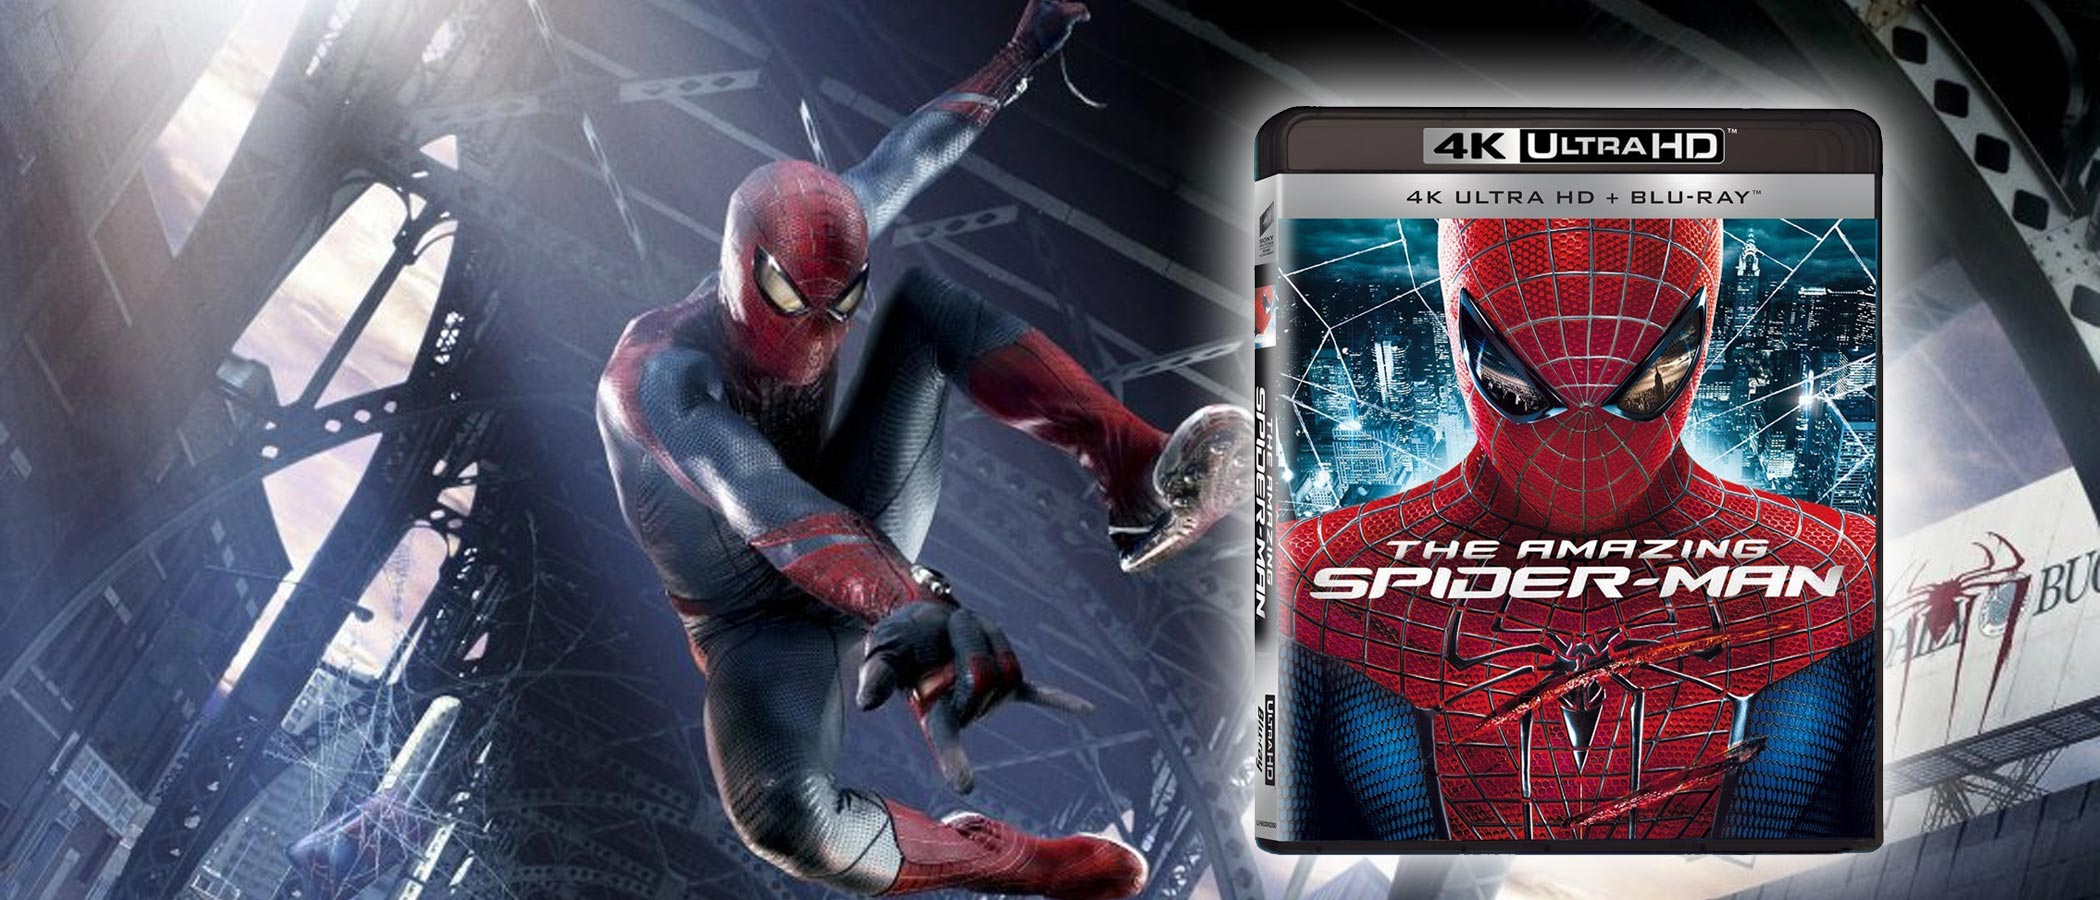 Recensione The Amazing Spider-Man in Blu-ray 4k Ultra HD HDR